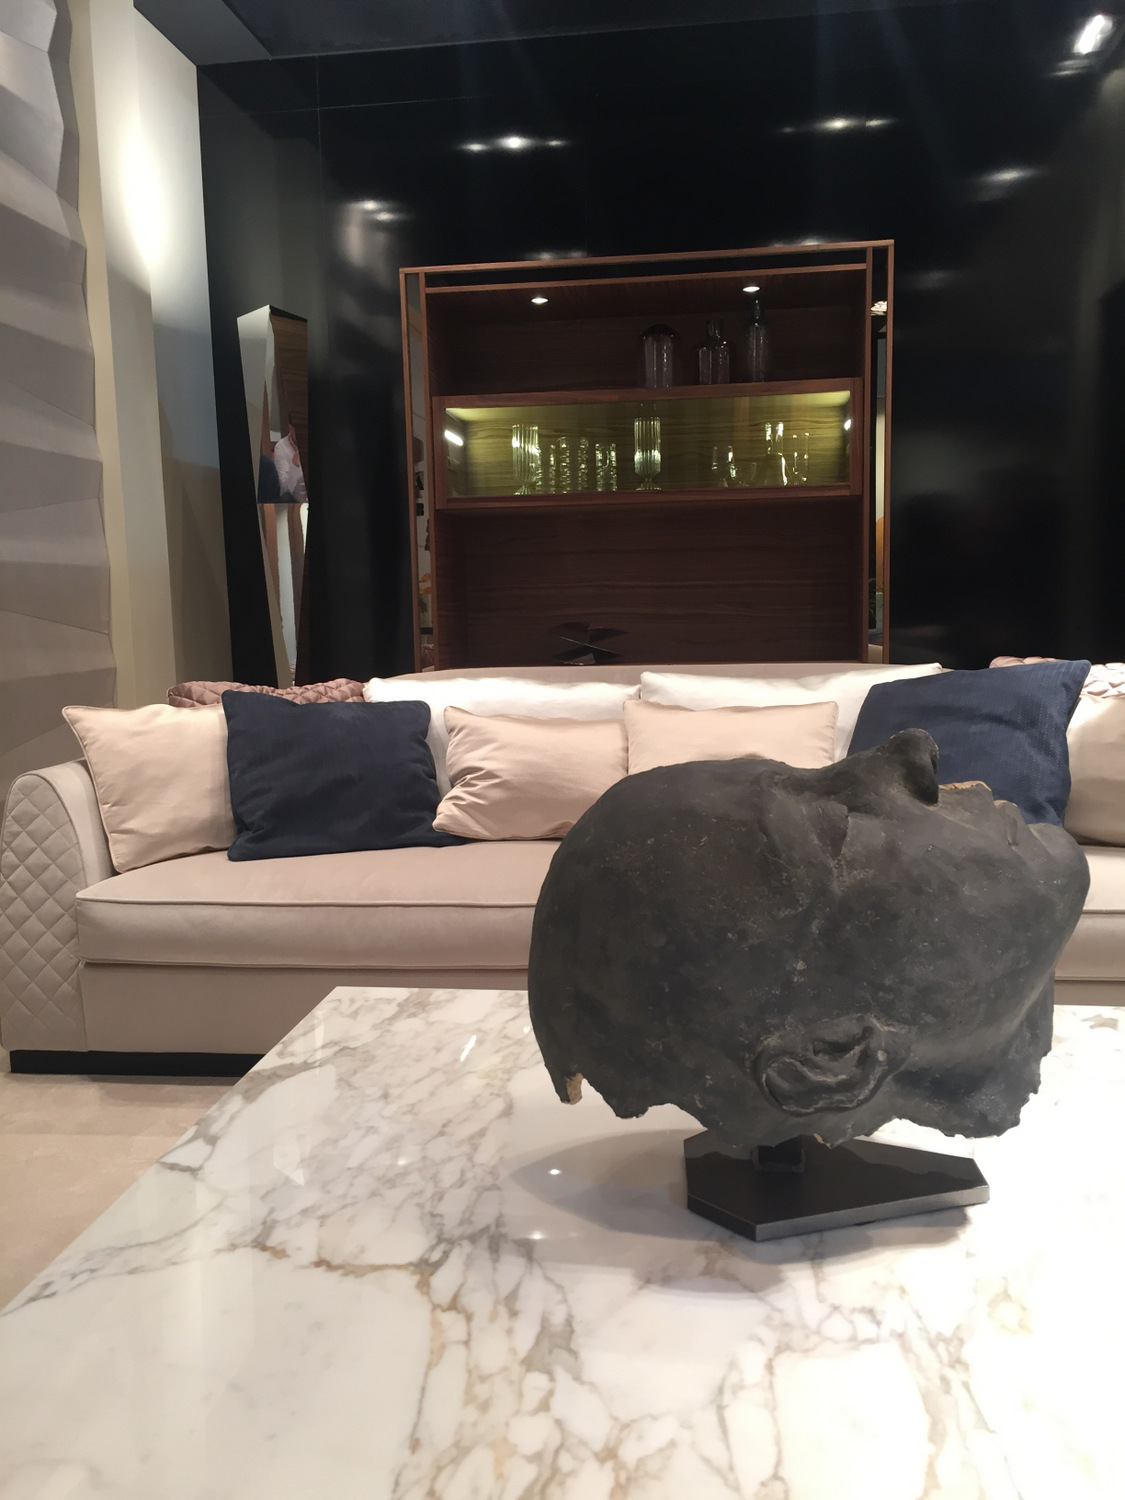 Coffee table with sculptural artwork